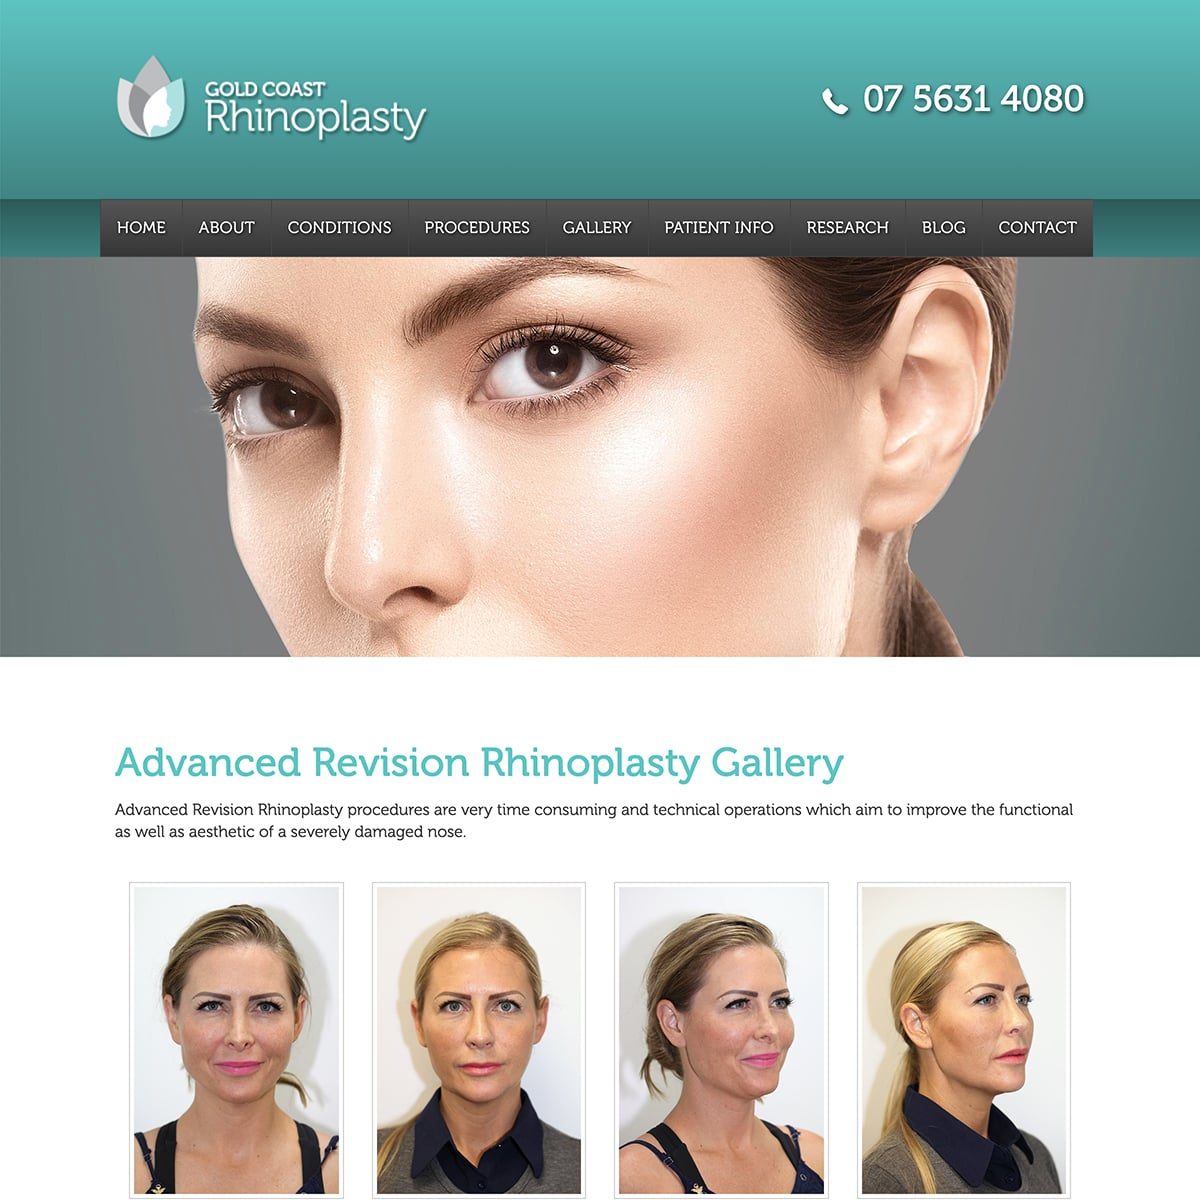 Gold Coast Rhinoplasty - Gallery Main Page